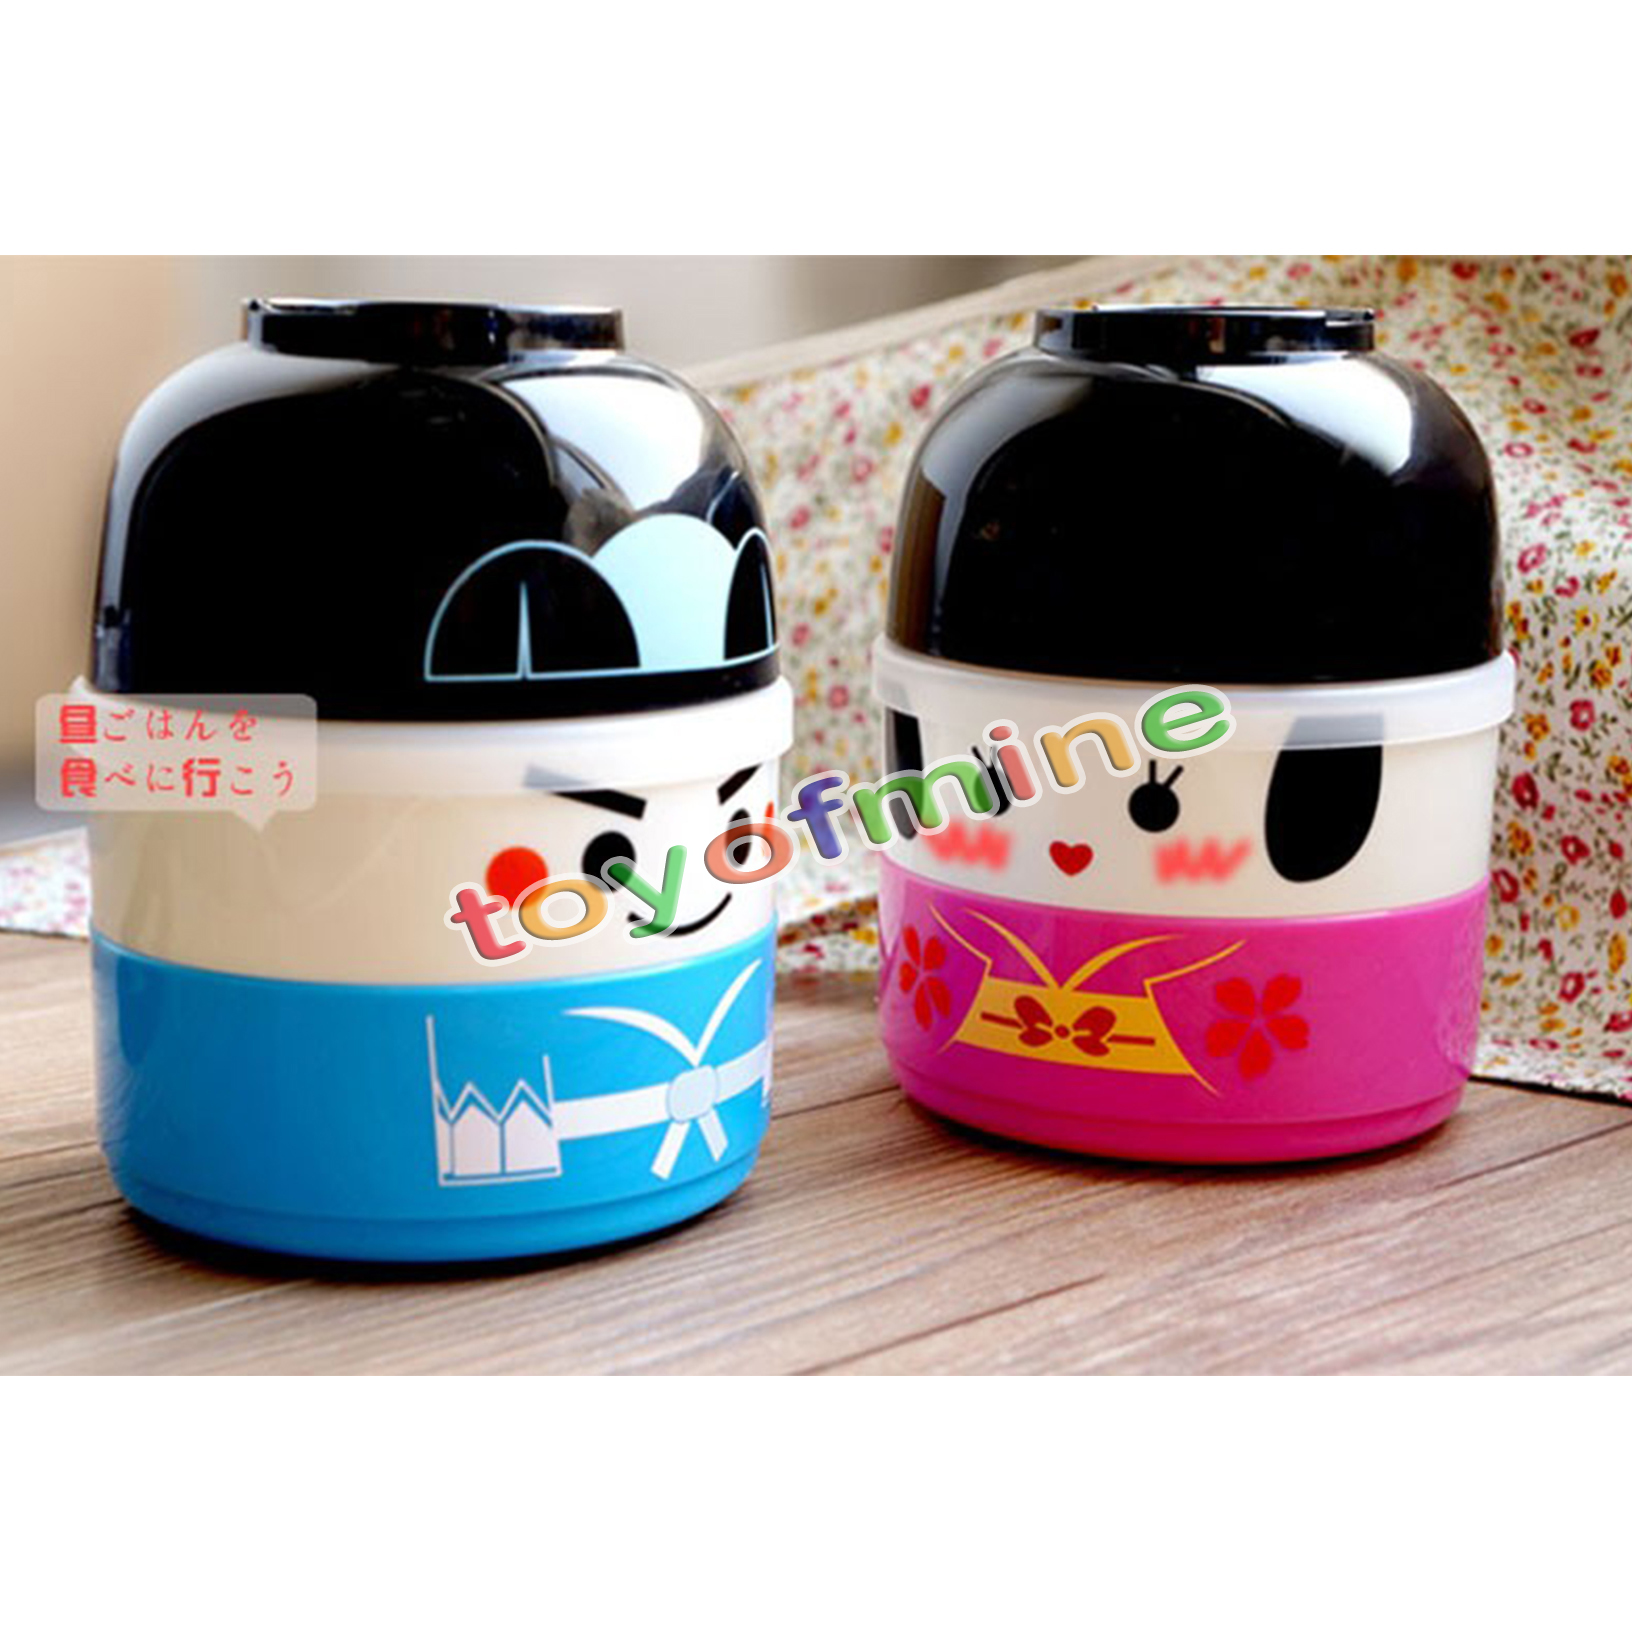 cute japanese cartoon doll double layer couple lunch box bento food container ebay. Black Bedroom Furniture Sets. Home Design Ideas